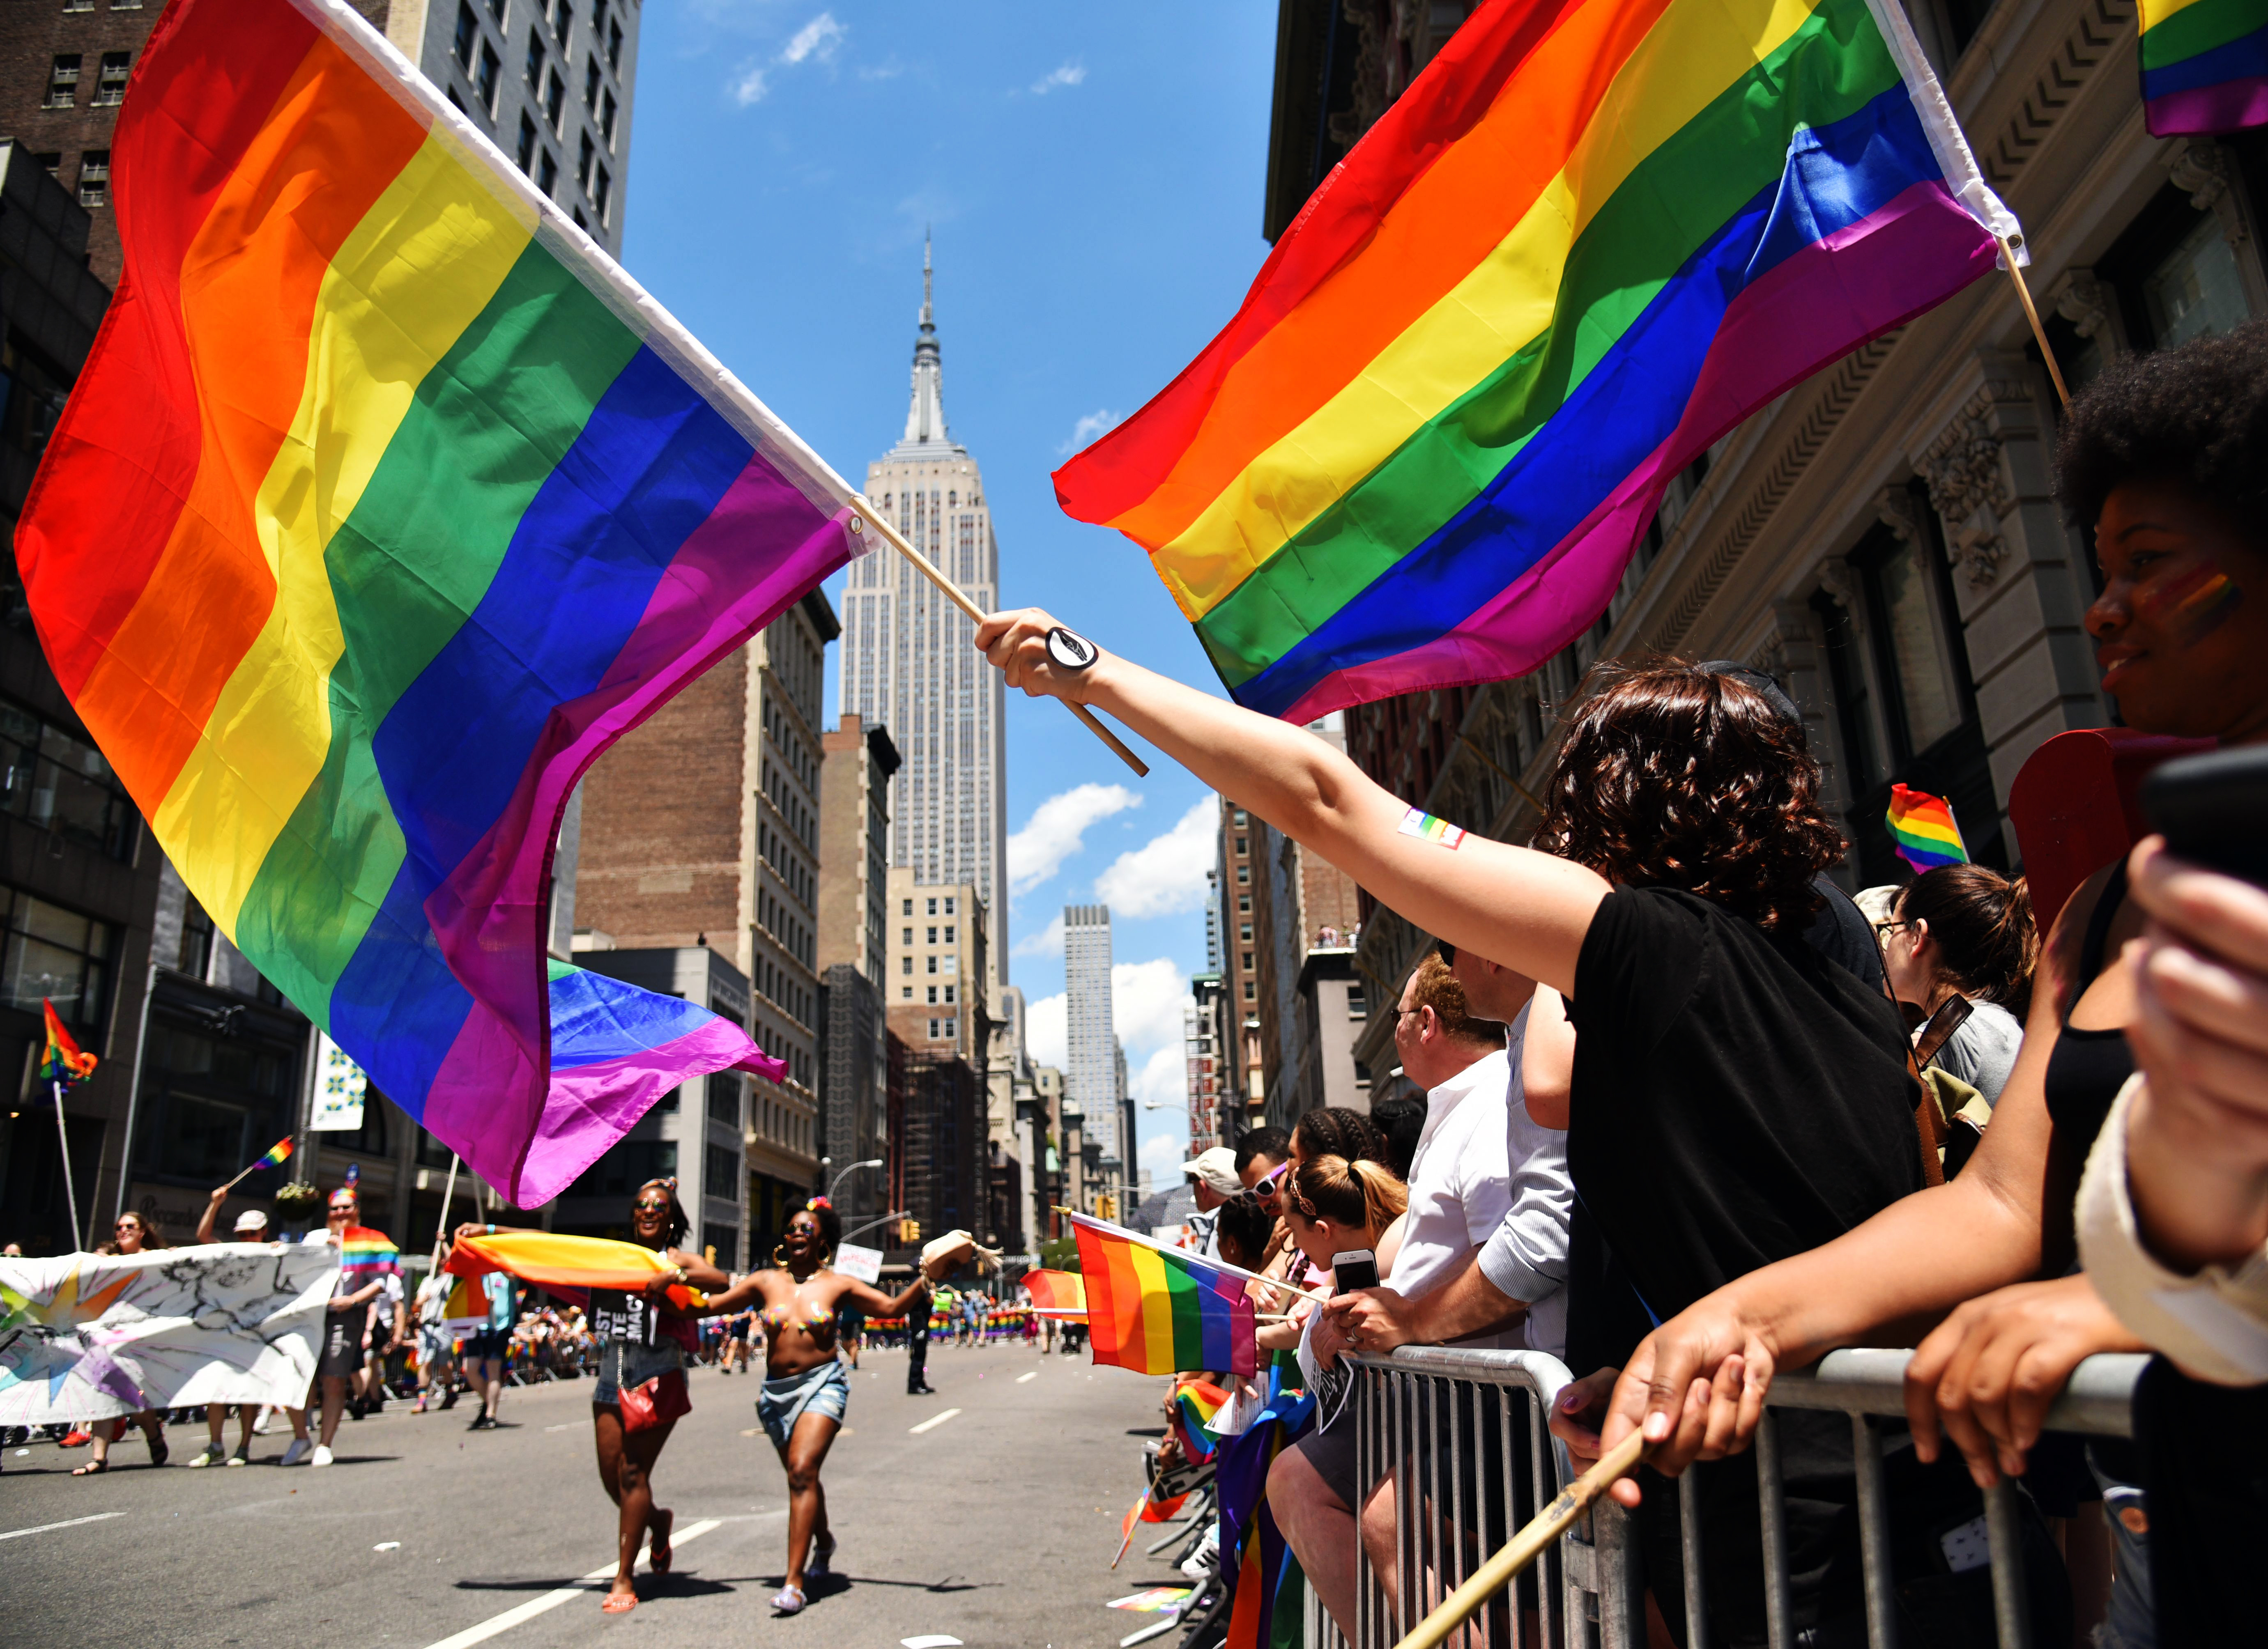 People enjoy the 2017 Pride Parade in New York lgbtq